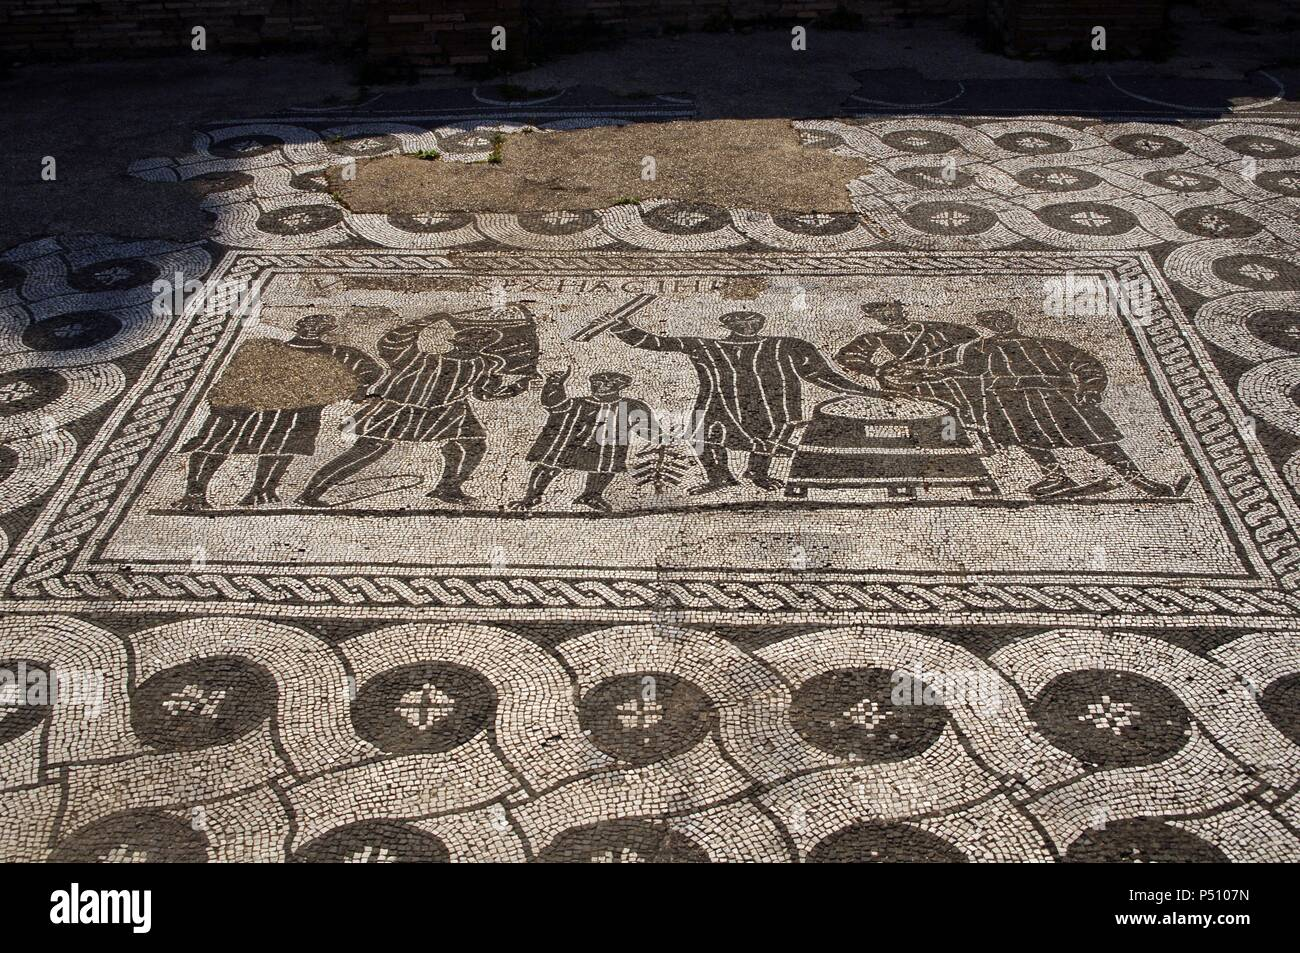 Ostia Antica. The Hall of the Grain Measurers. 3rd century. Mosaic depicting grain measurers (mensores frumentariiI) at work. Italy. Stock Photo